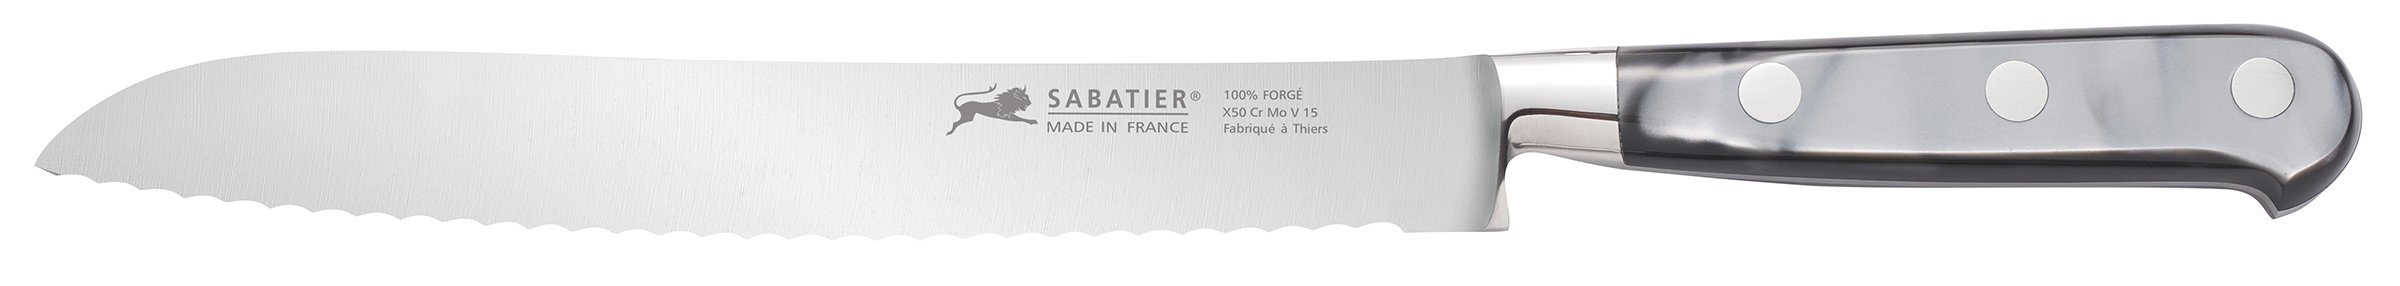 Sabatier Stainless Steel Bread Knife with Mother of Pearl-Inspired Handle, 8-Inch